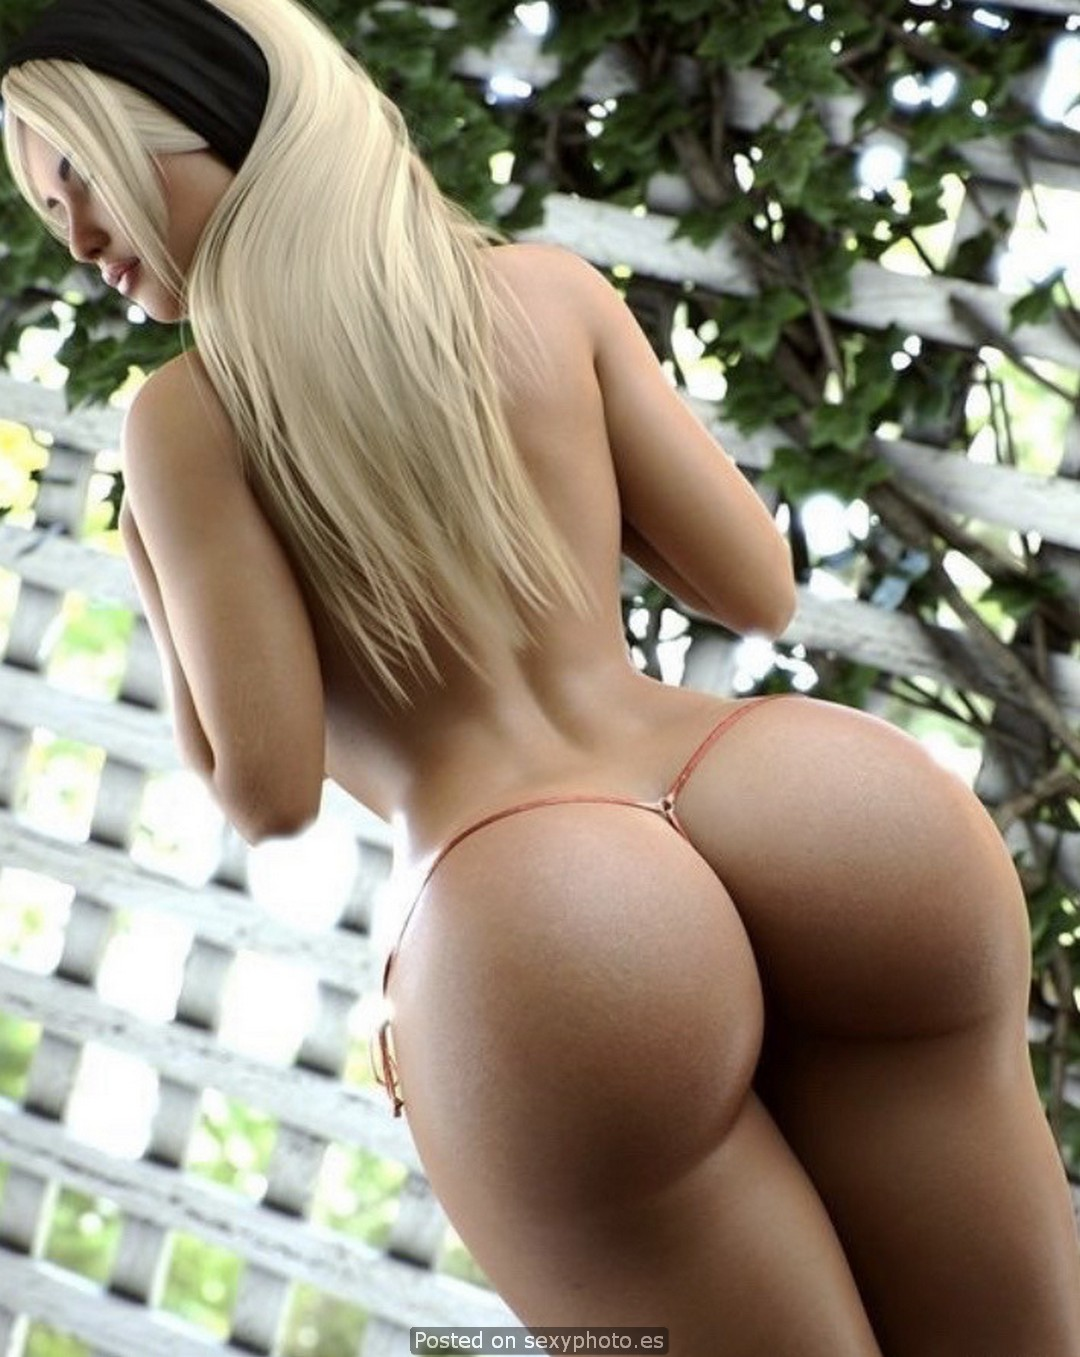 minithong ass